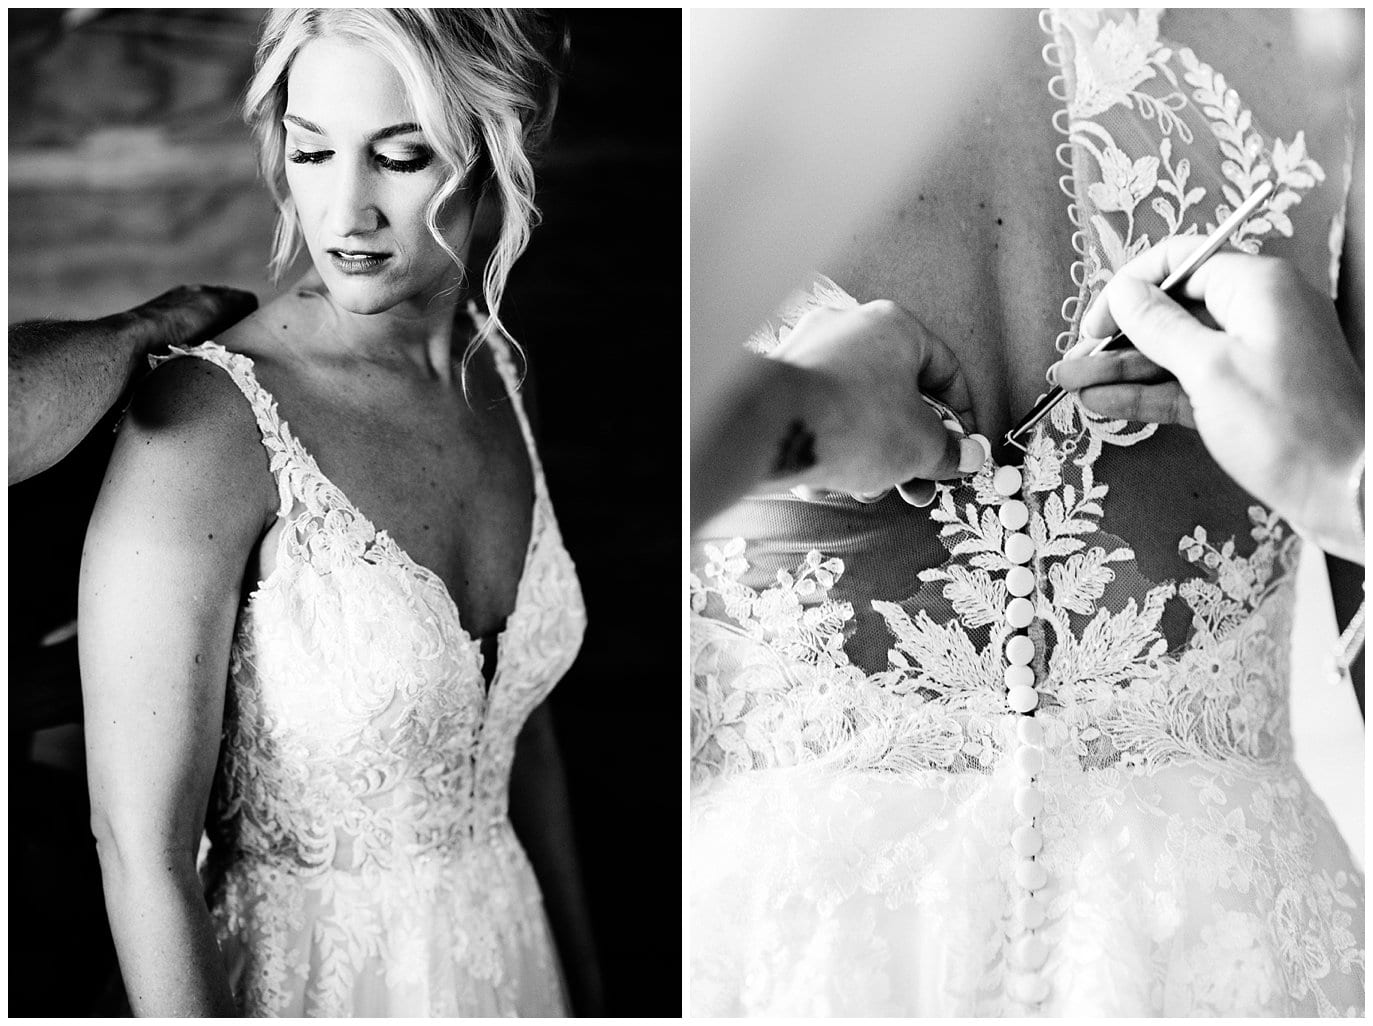 lace bridal dress buttoned with crochet hook at Elegant Piney River Ranch wedding by Piney River Ranch wedding photographer Jennie Crate, Photographer